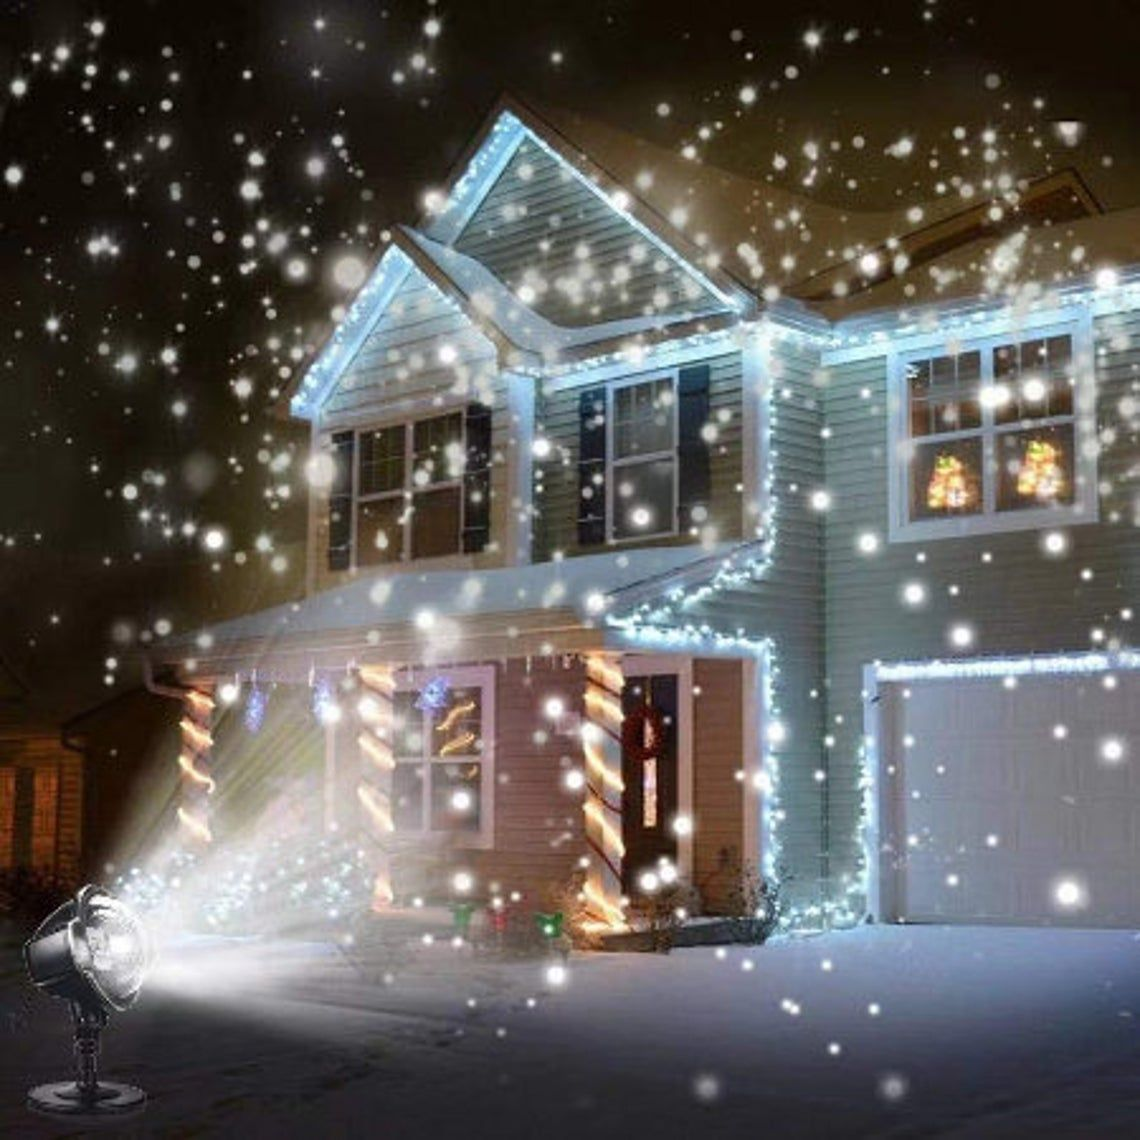 Led Snowfall Projector Lights Outdoor Christmas Snowfall Light Waterproof Remote For Garden House Led Christmas Lights Garden Lamps Light Decorations